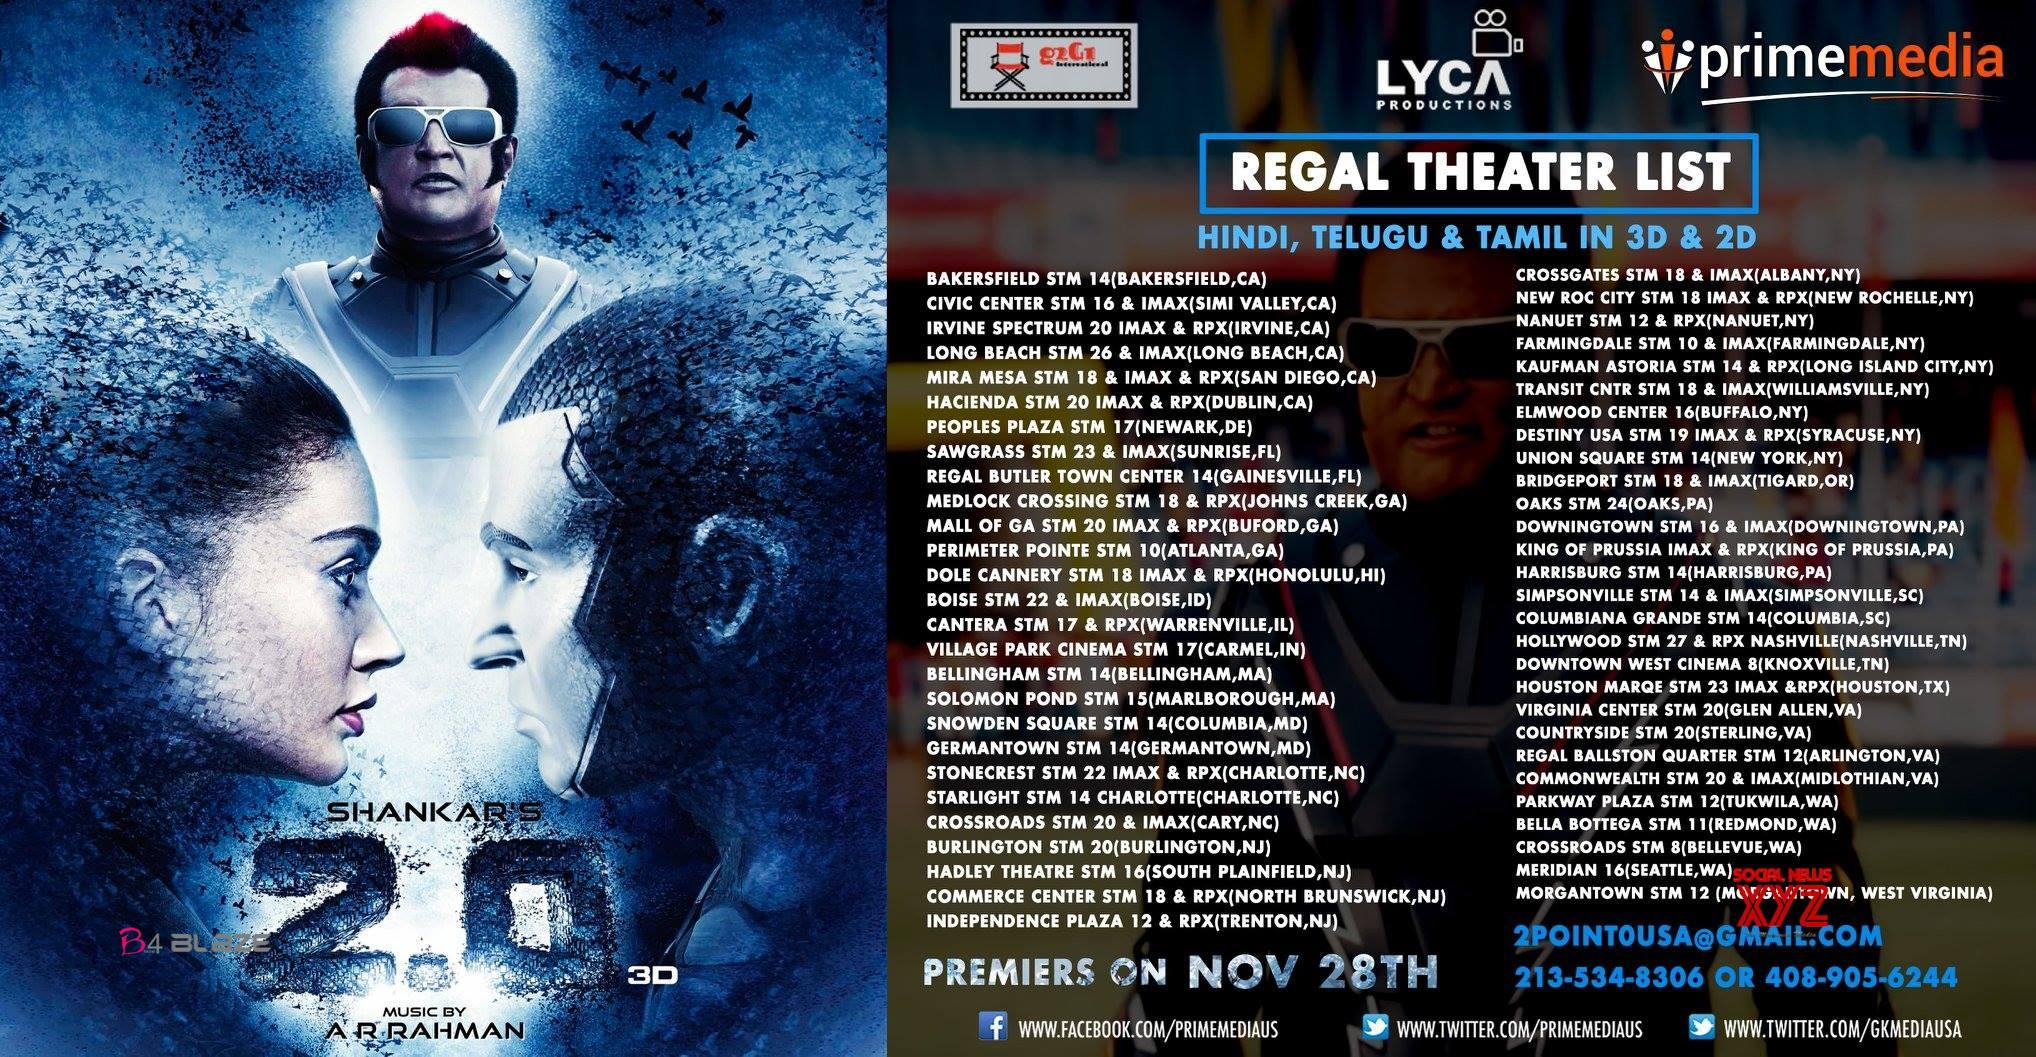 2.0 usa regal theater list